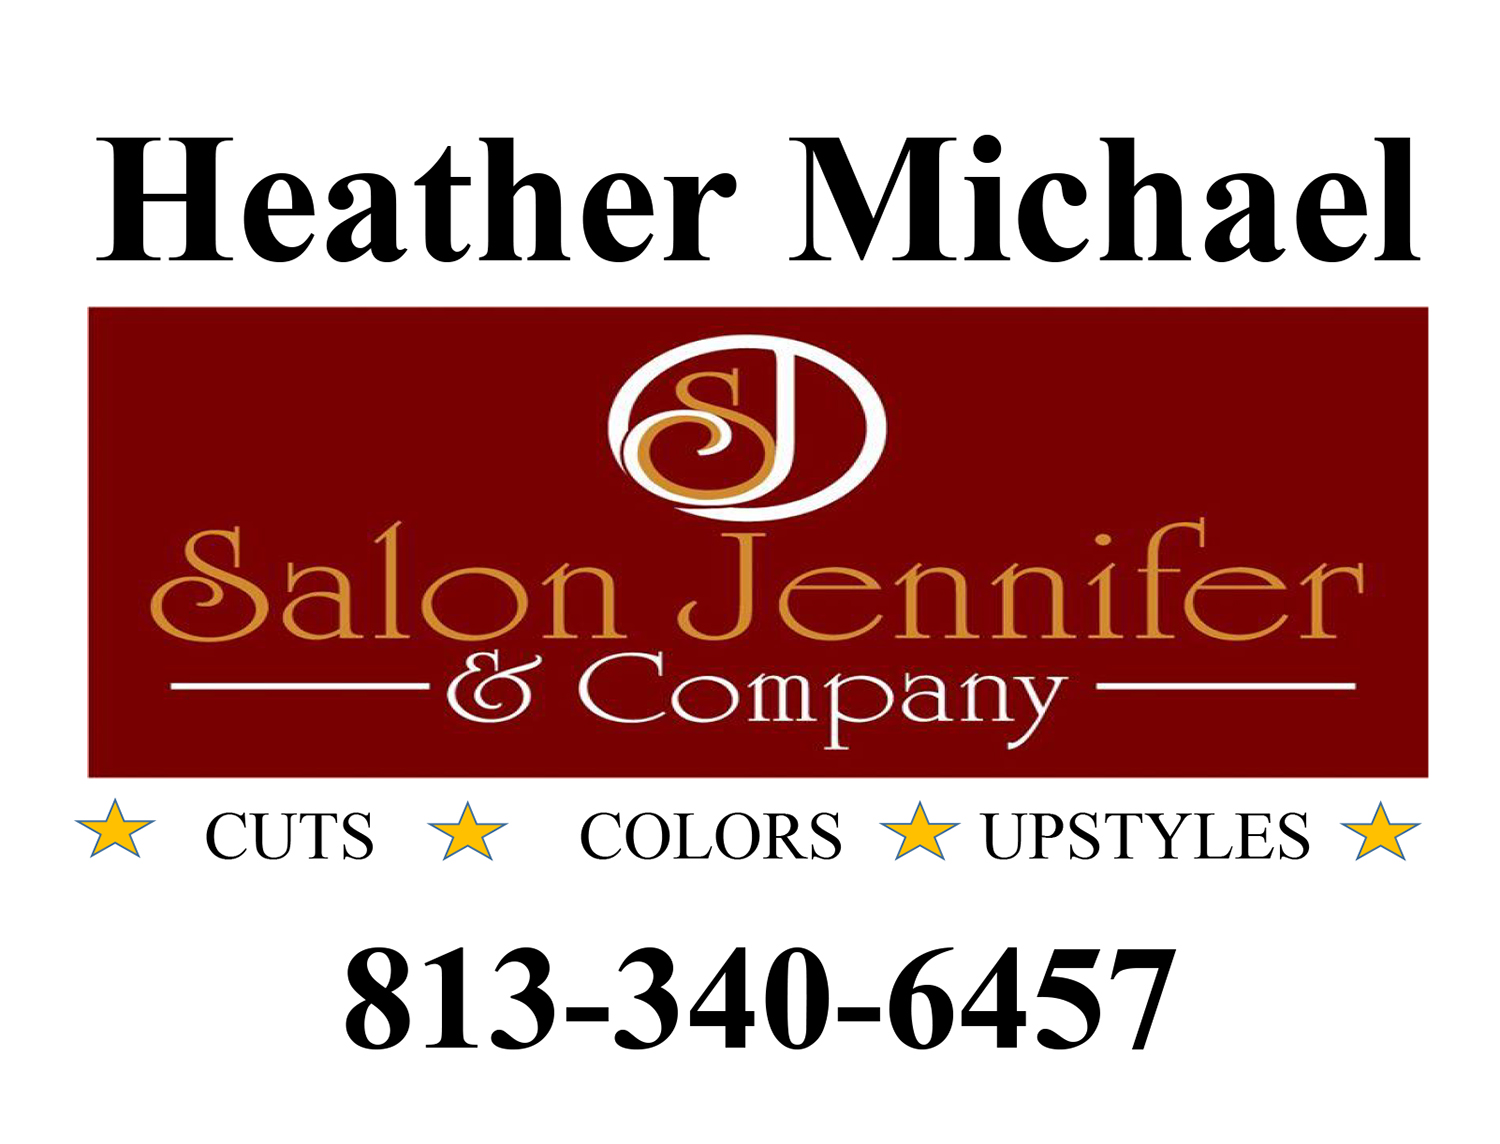 Heather Michael logo with number